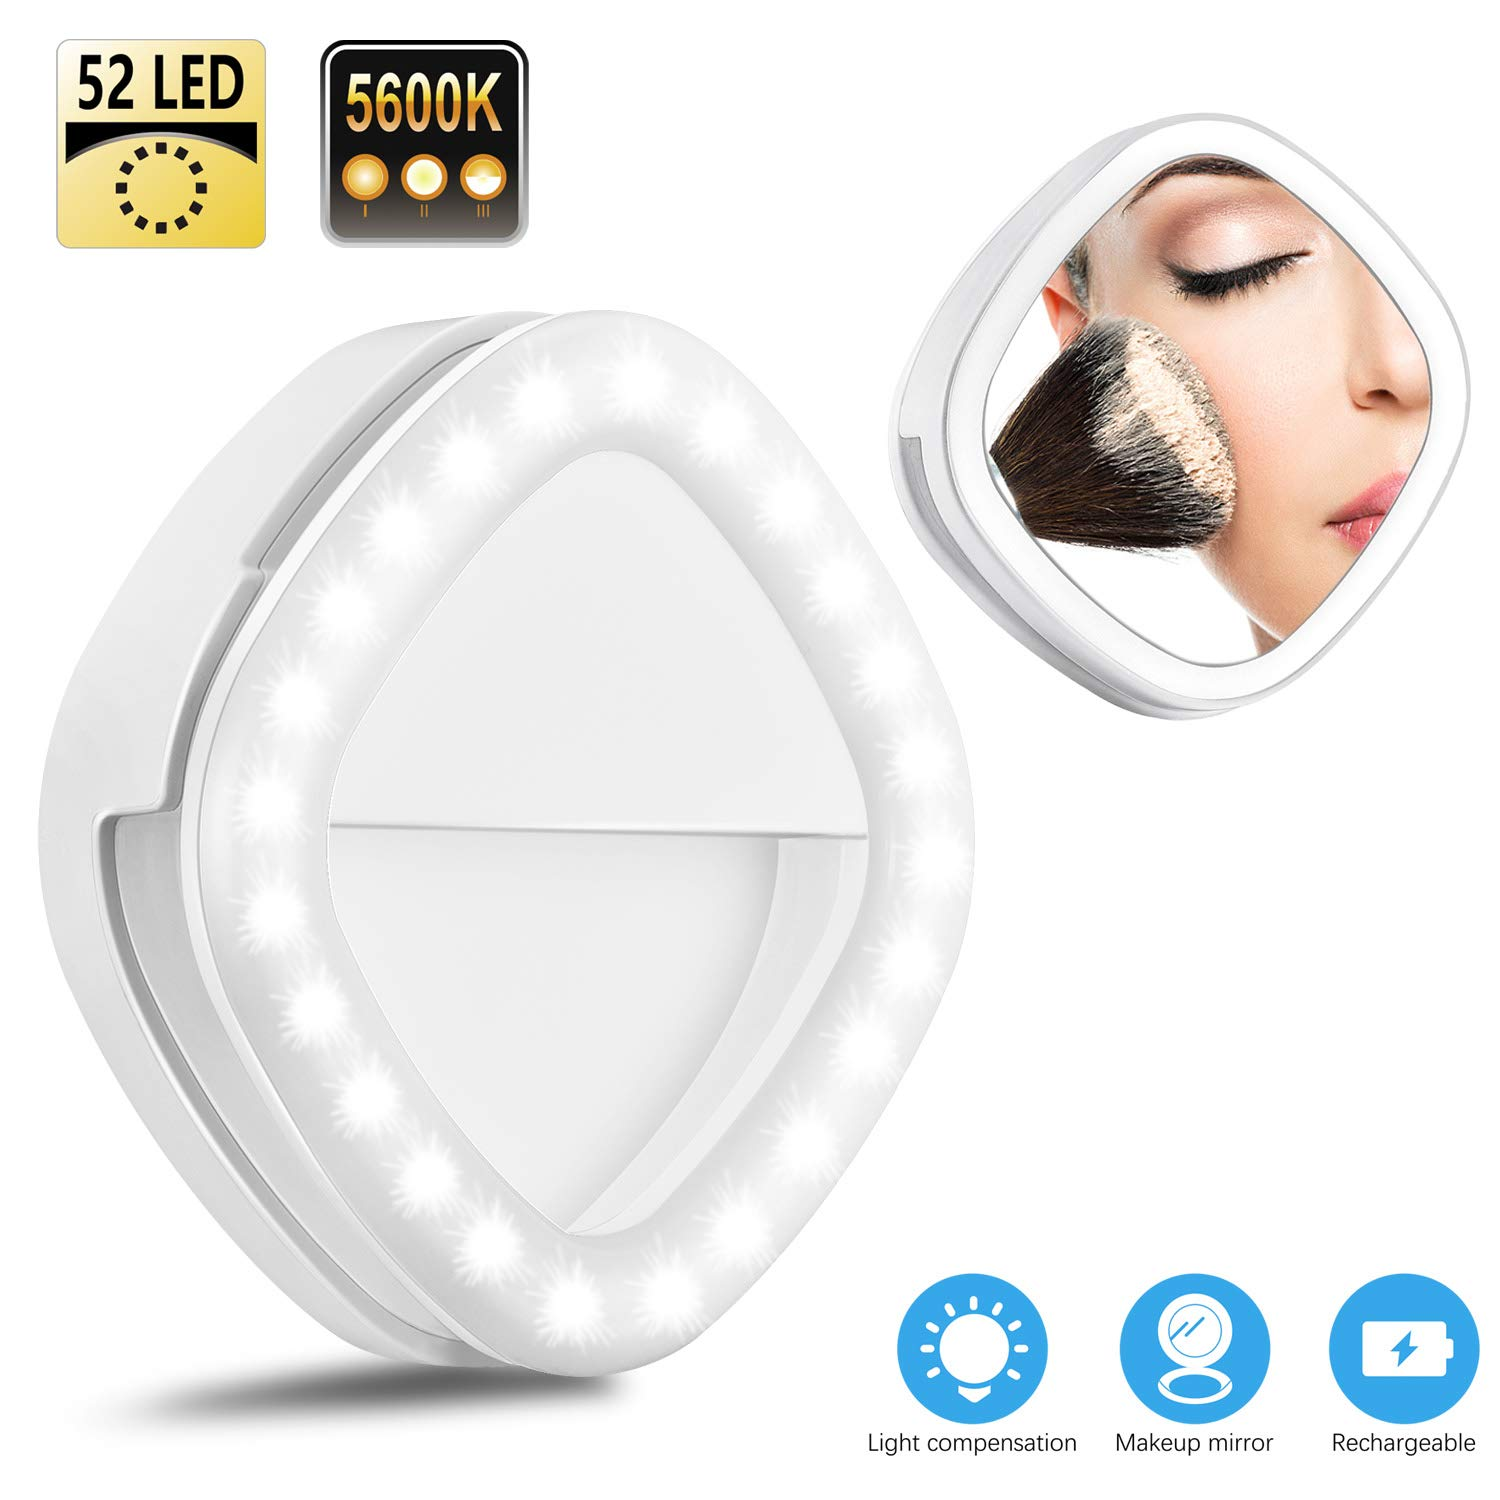 Selfie Ring Light, Solarxia Rechargeable Selfie Lights with Makeup Mirror [52 LED Bulbs][3-Light Mode][9-Level Brightness] for iPhone iPad MacBook Laptop Android Camera(White)